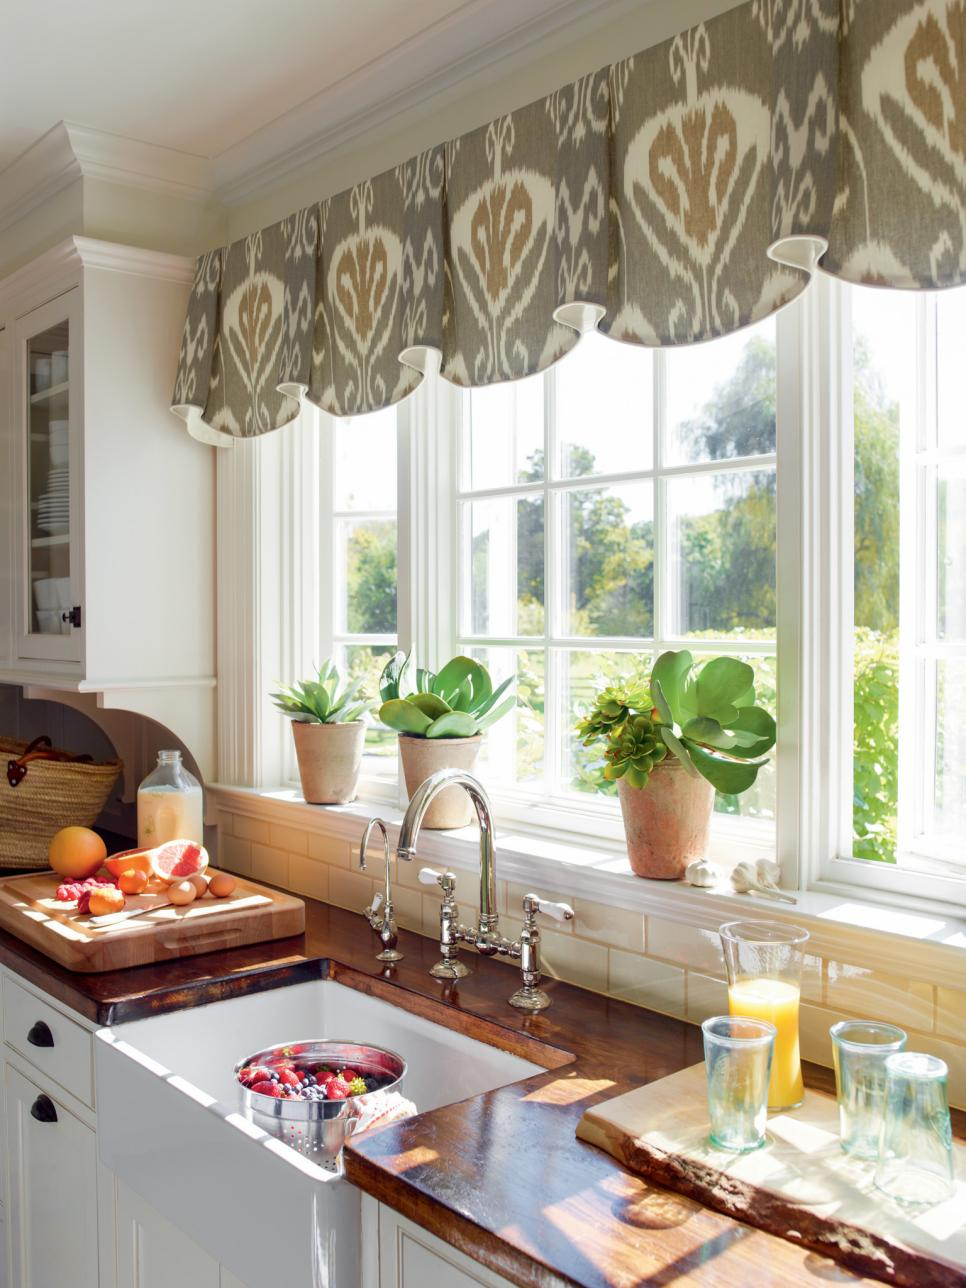 window-treatment-ideas-kitchen-with-regard-to-kitchen-window-ideas-top-10-stylish-kitchen-window-ideas